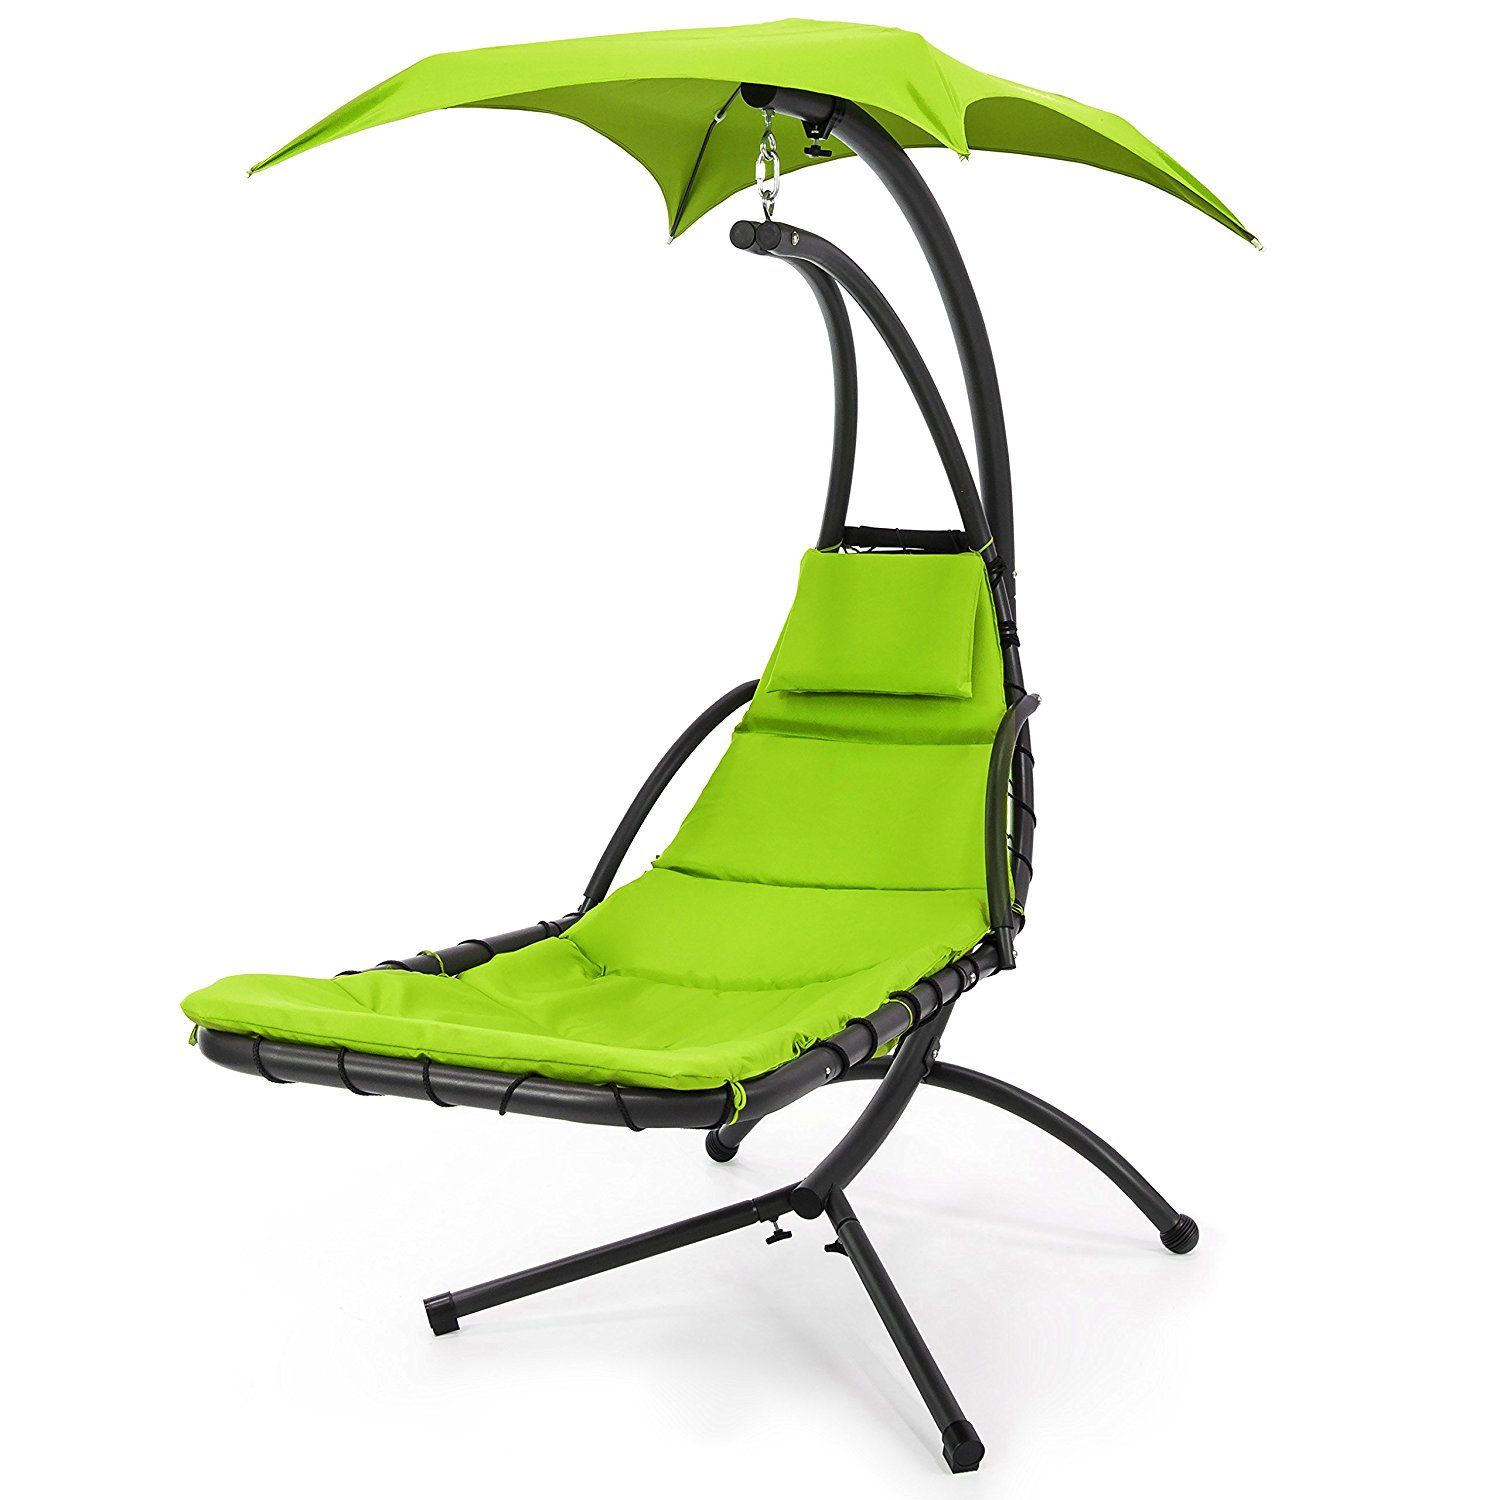 Hanging Chaise Lounger With Canopy